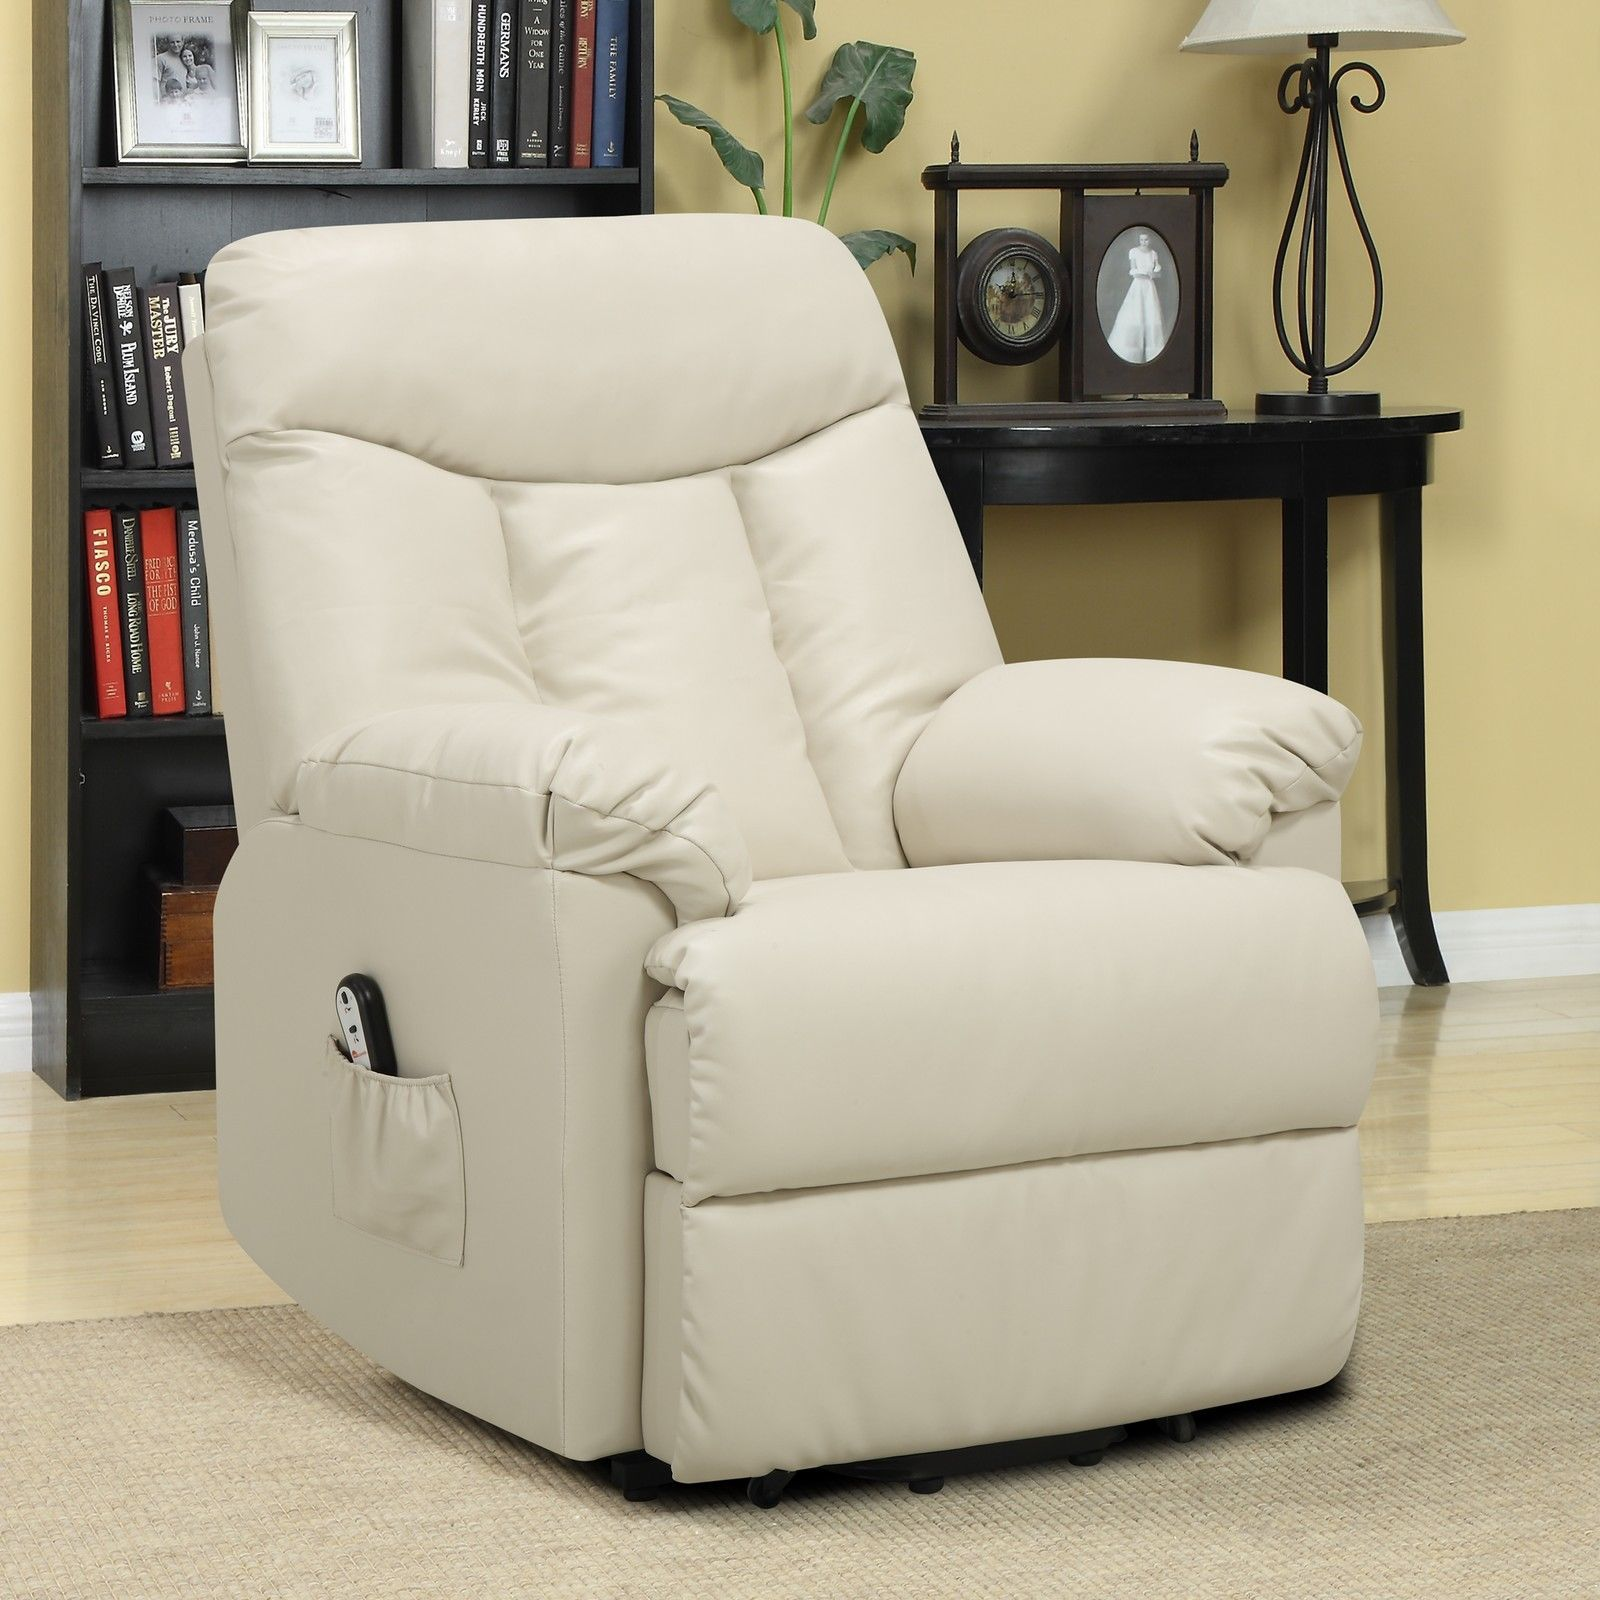 Electric Lift Chair Electric Lift Chair Recliner Cream Leather Power Motion